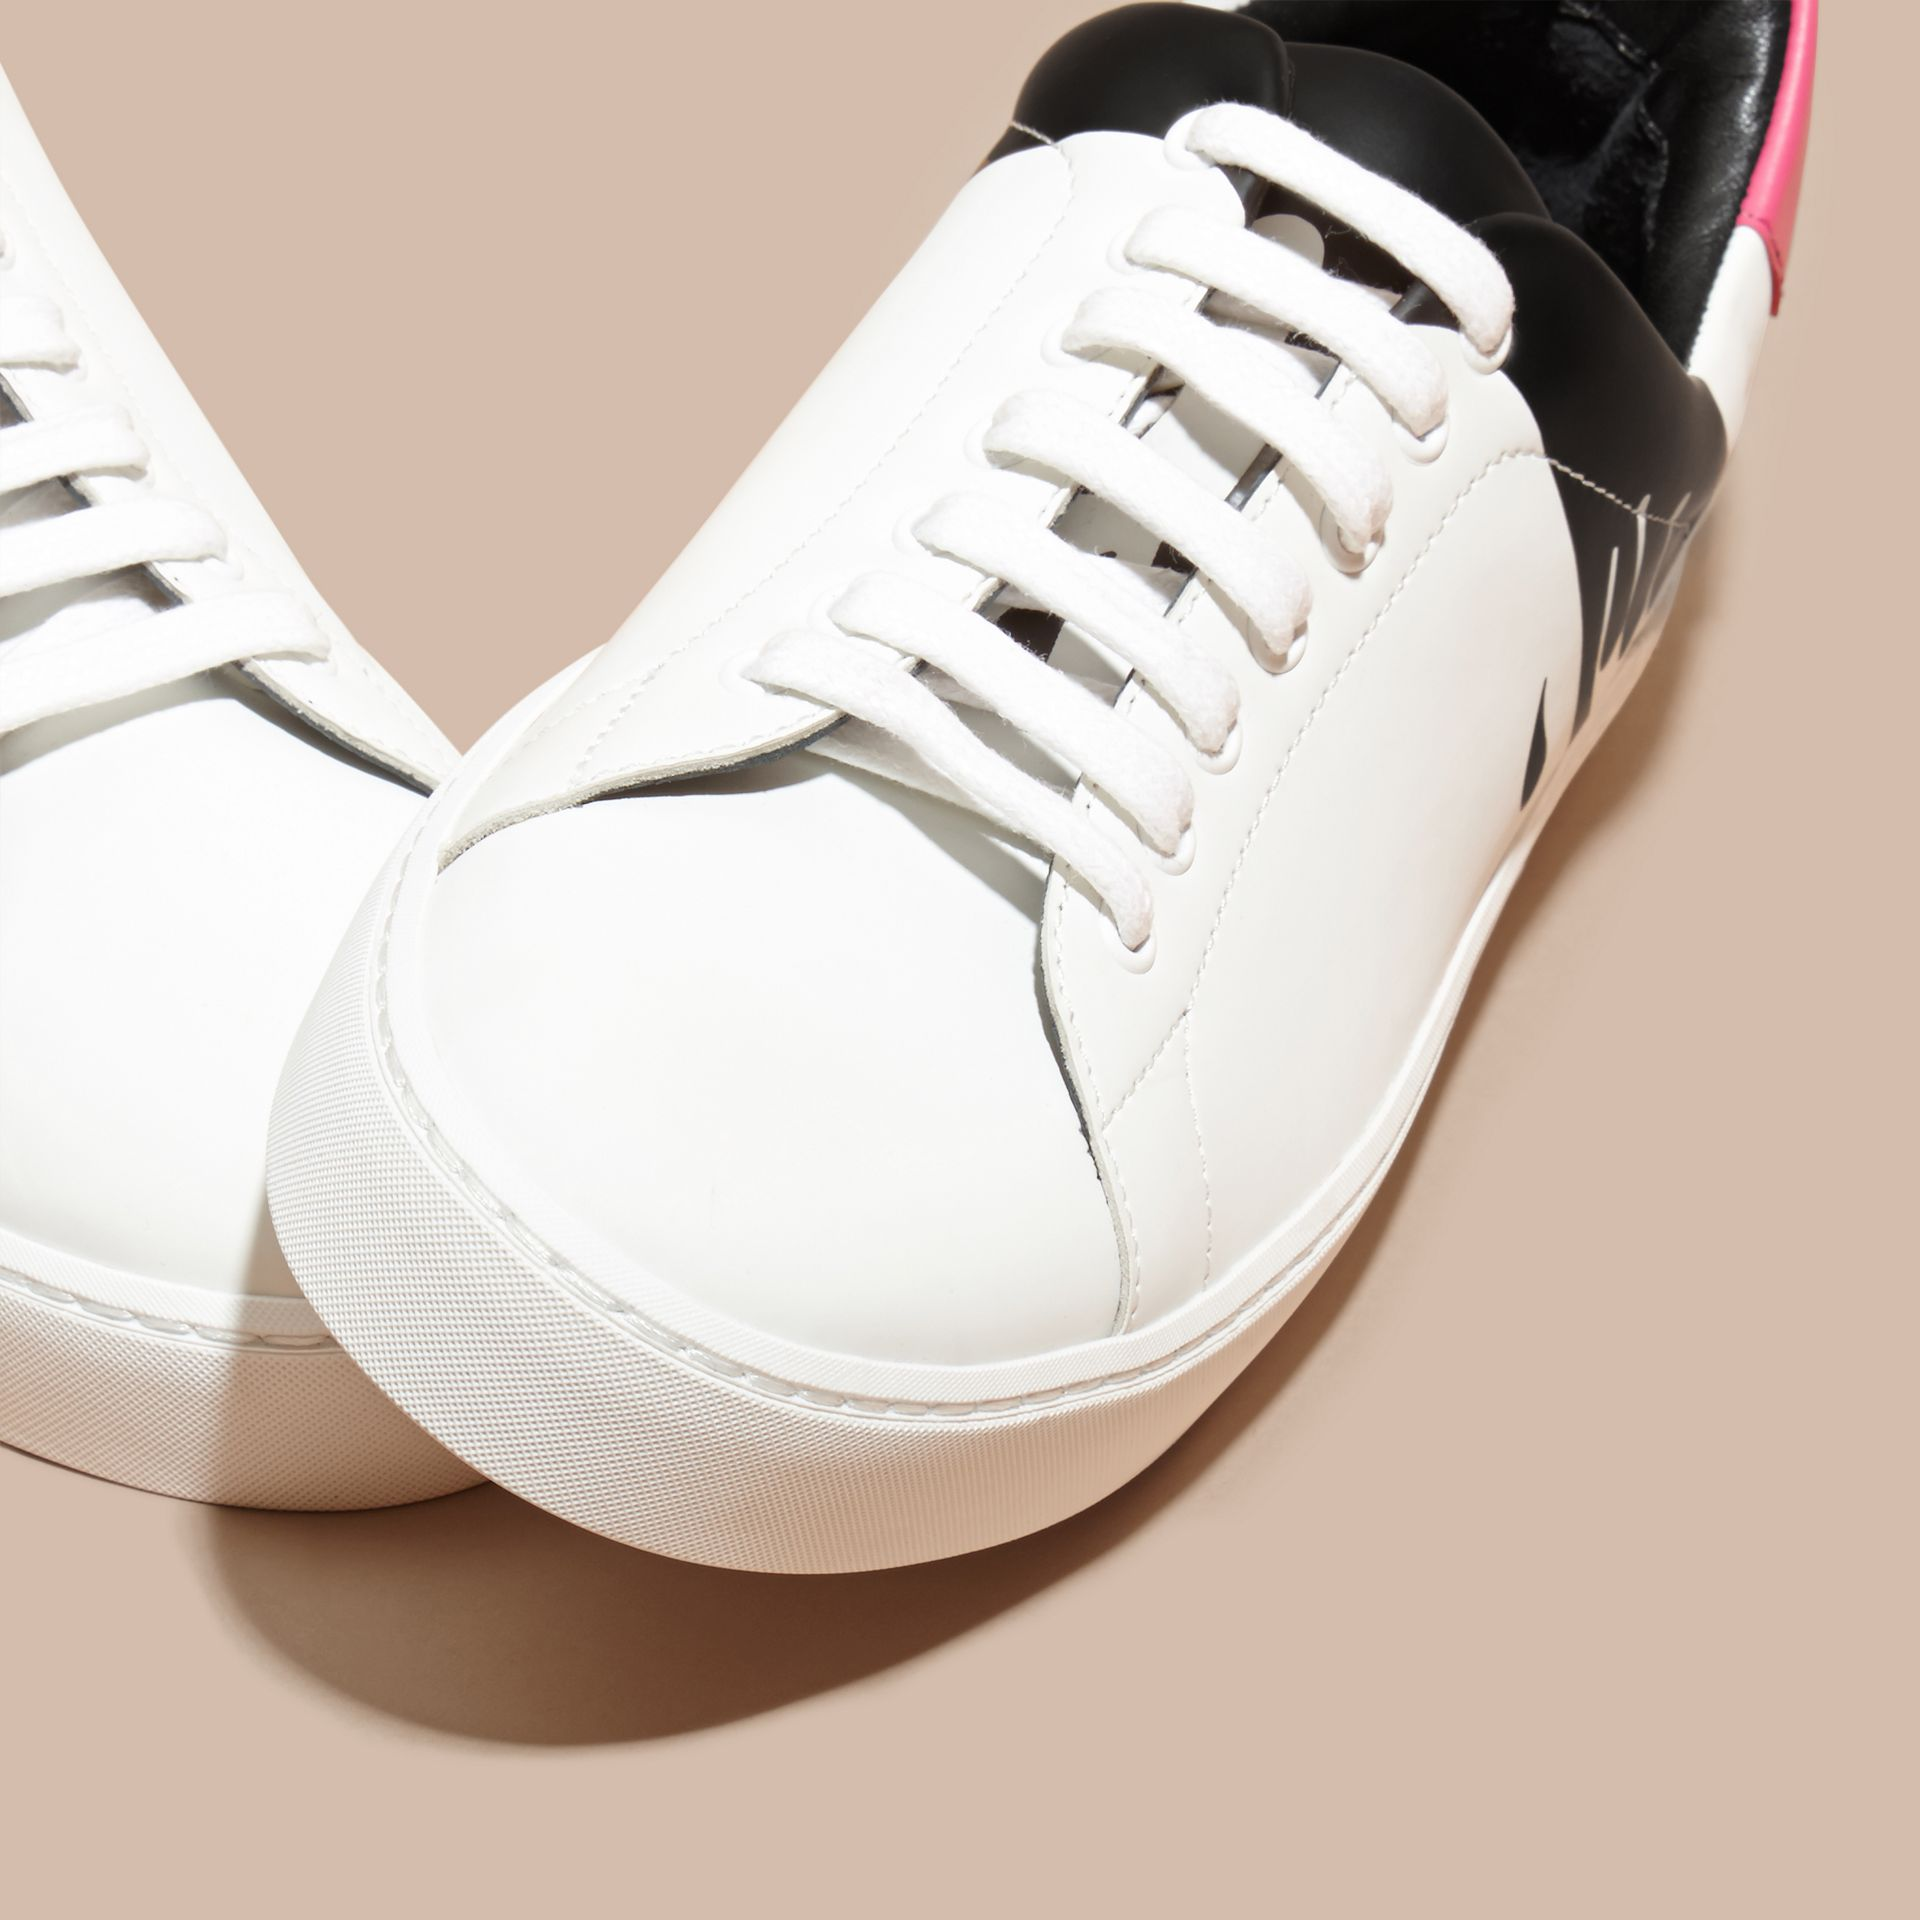 Blanc optique Sneakers en cuir à motif coulure - photo de la galerie 3